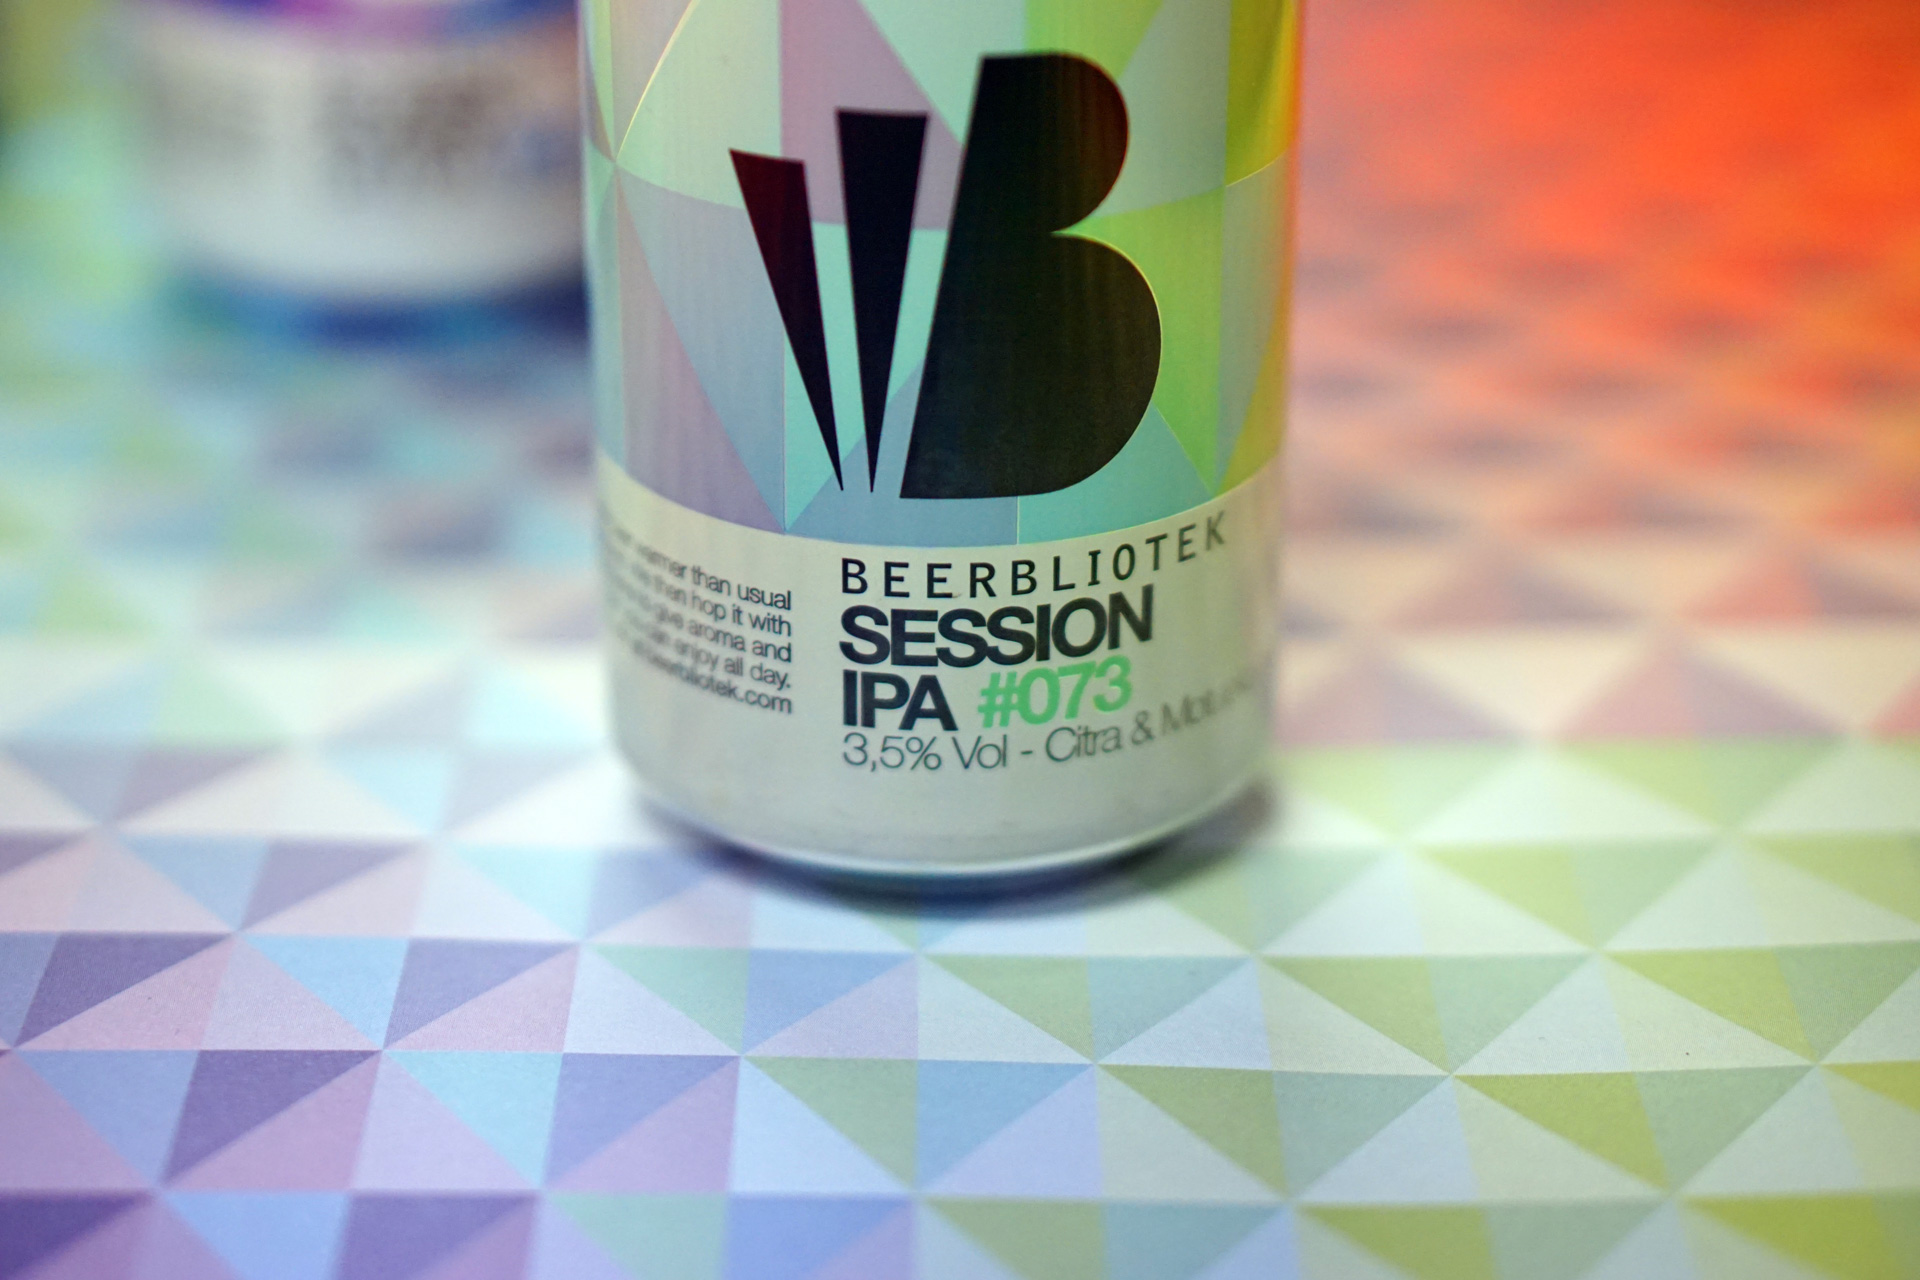 Beerbliotek-Can-Colour-Session-IPA